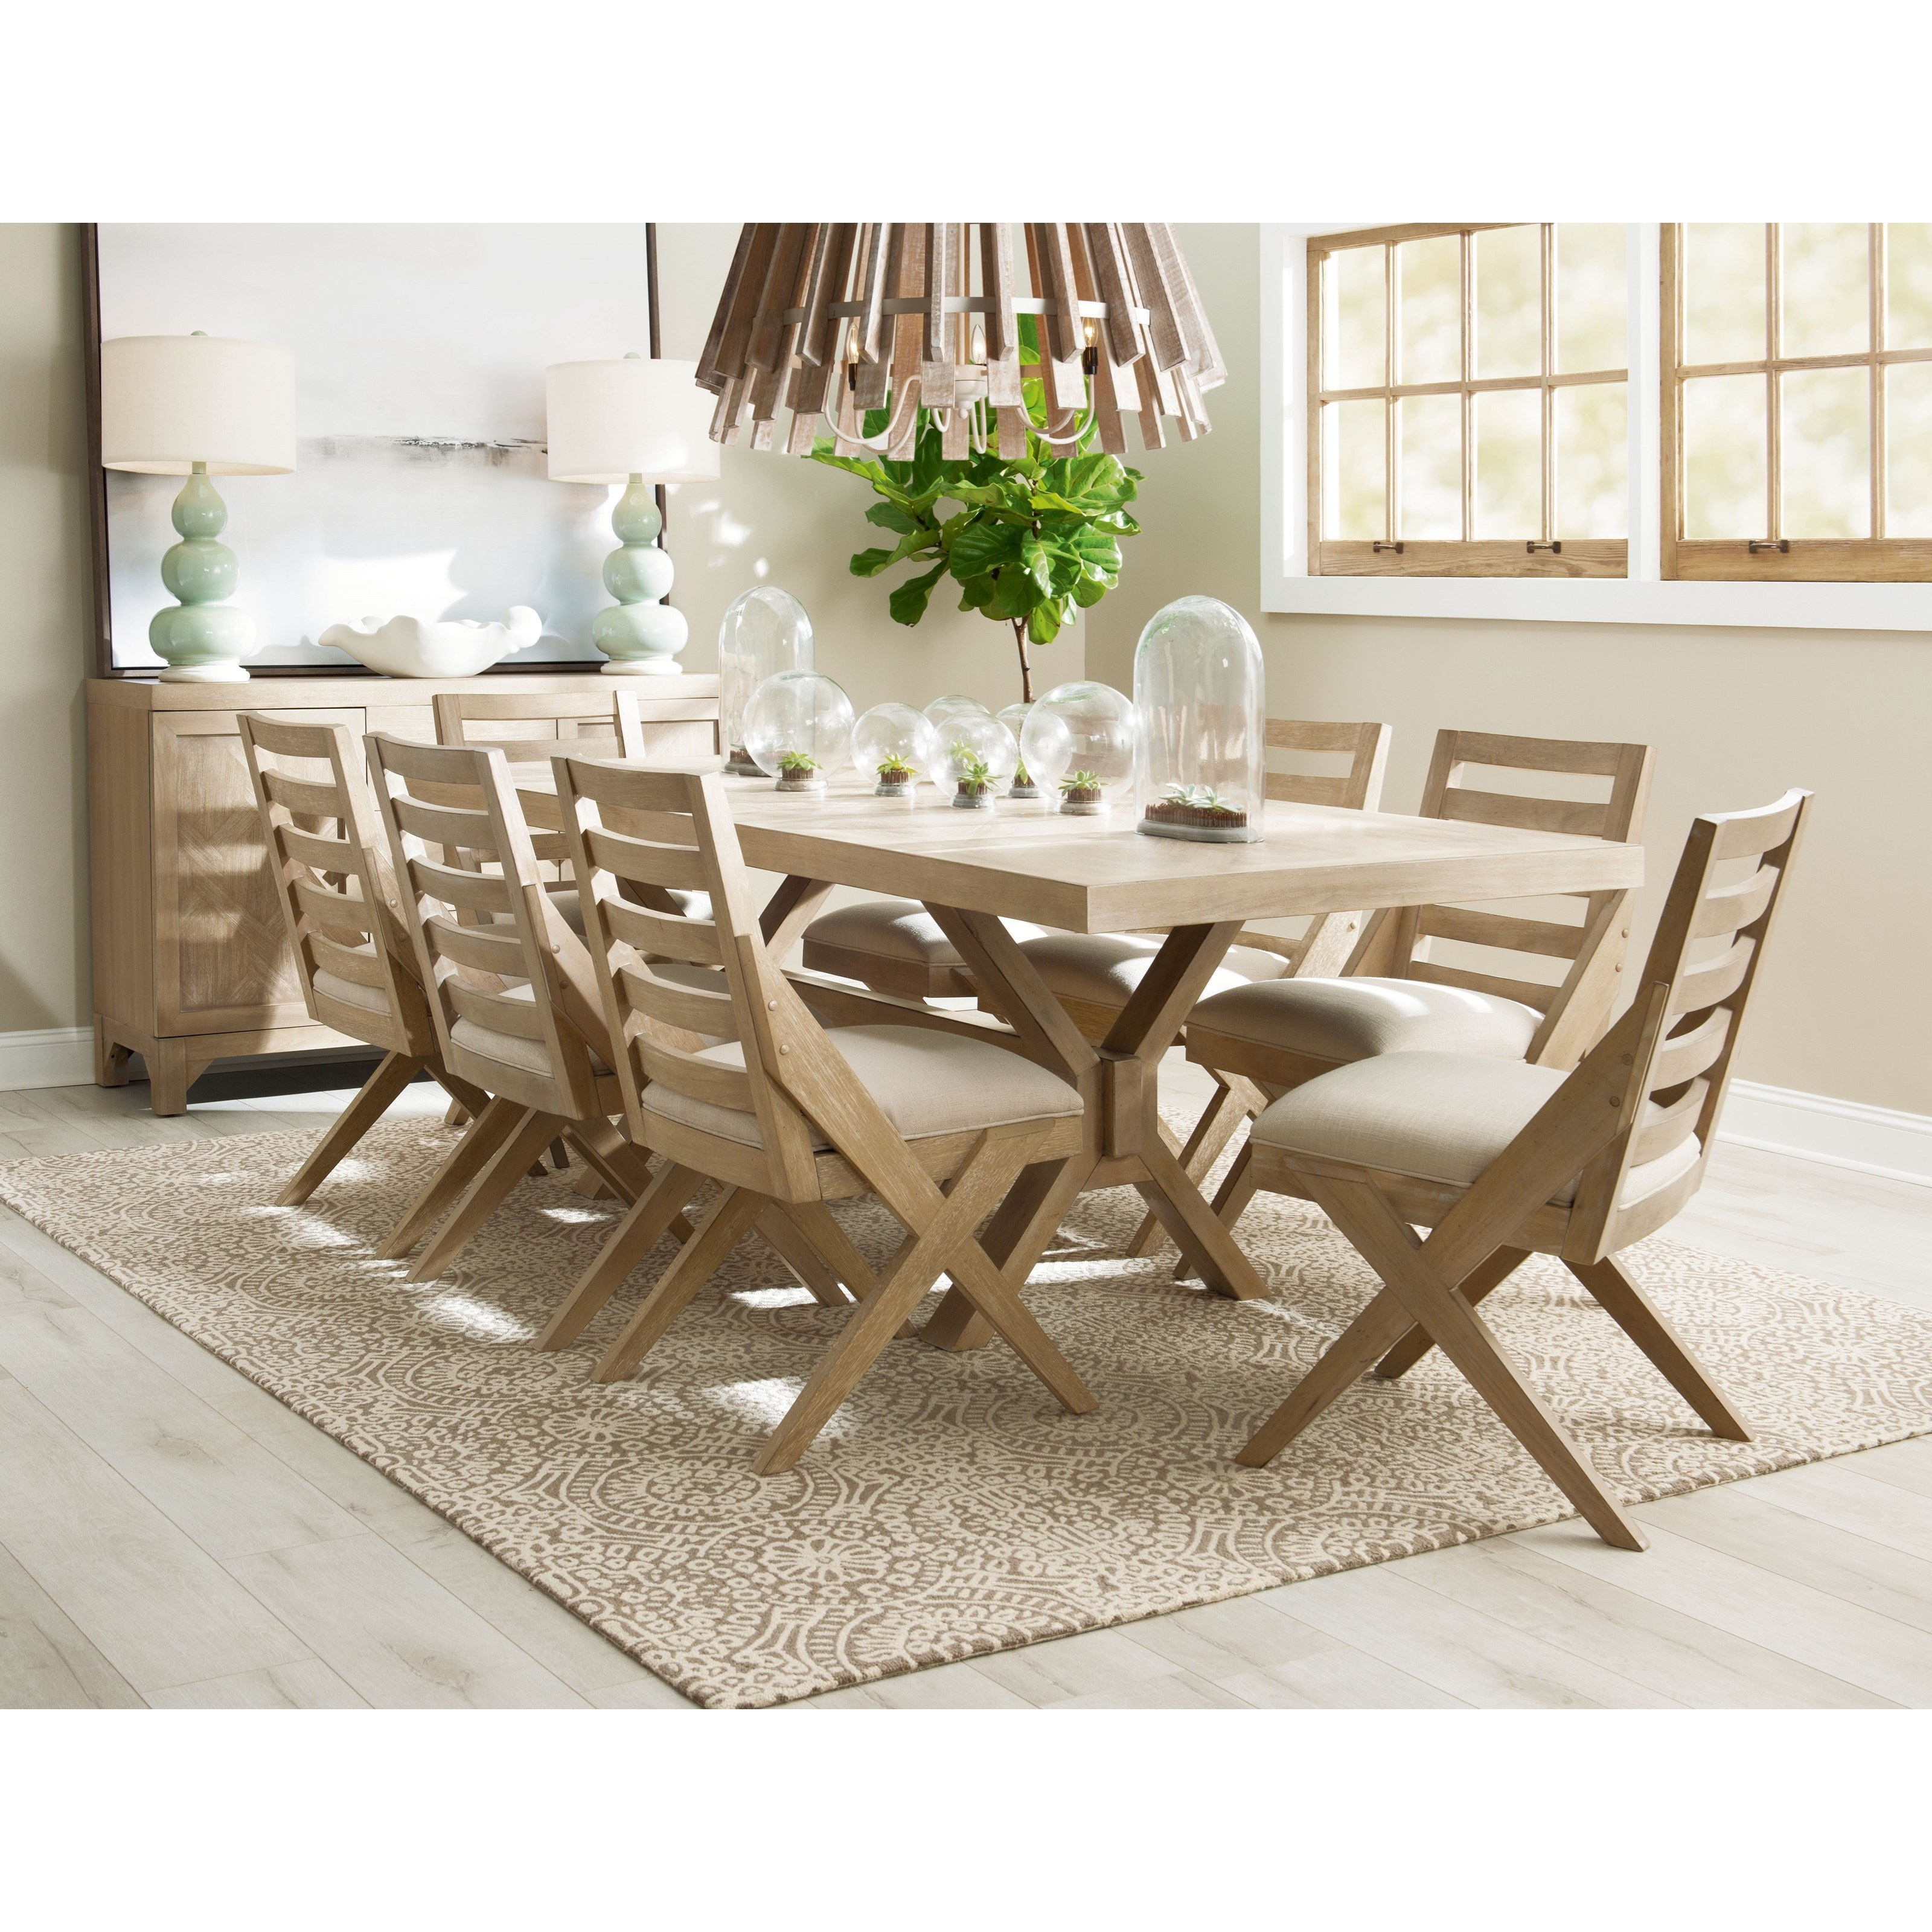 Lattice Dining Room Group by Legacy Classic at Stoney Creek Furniture